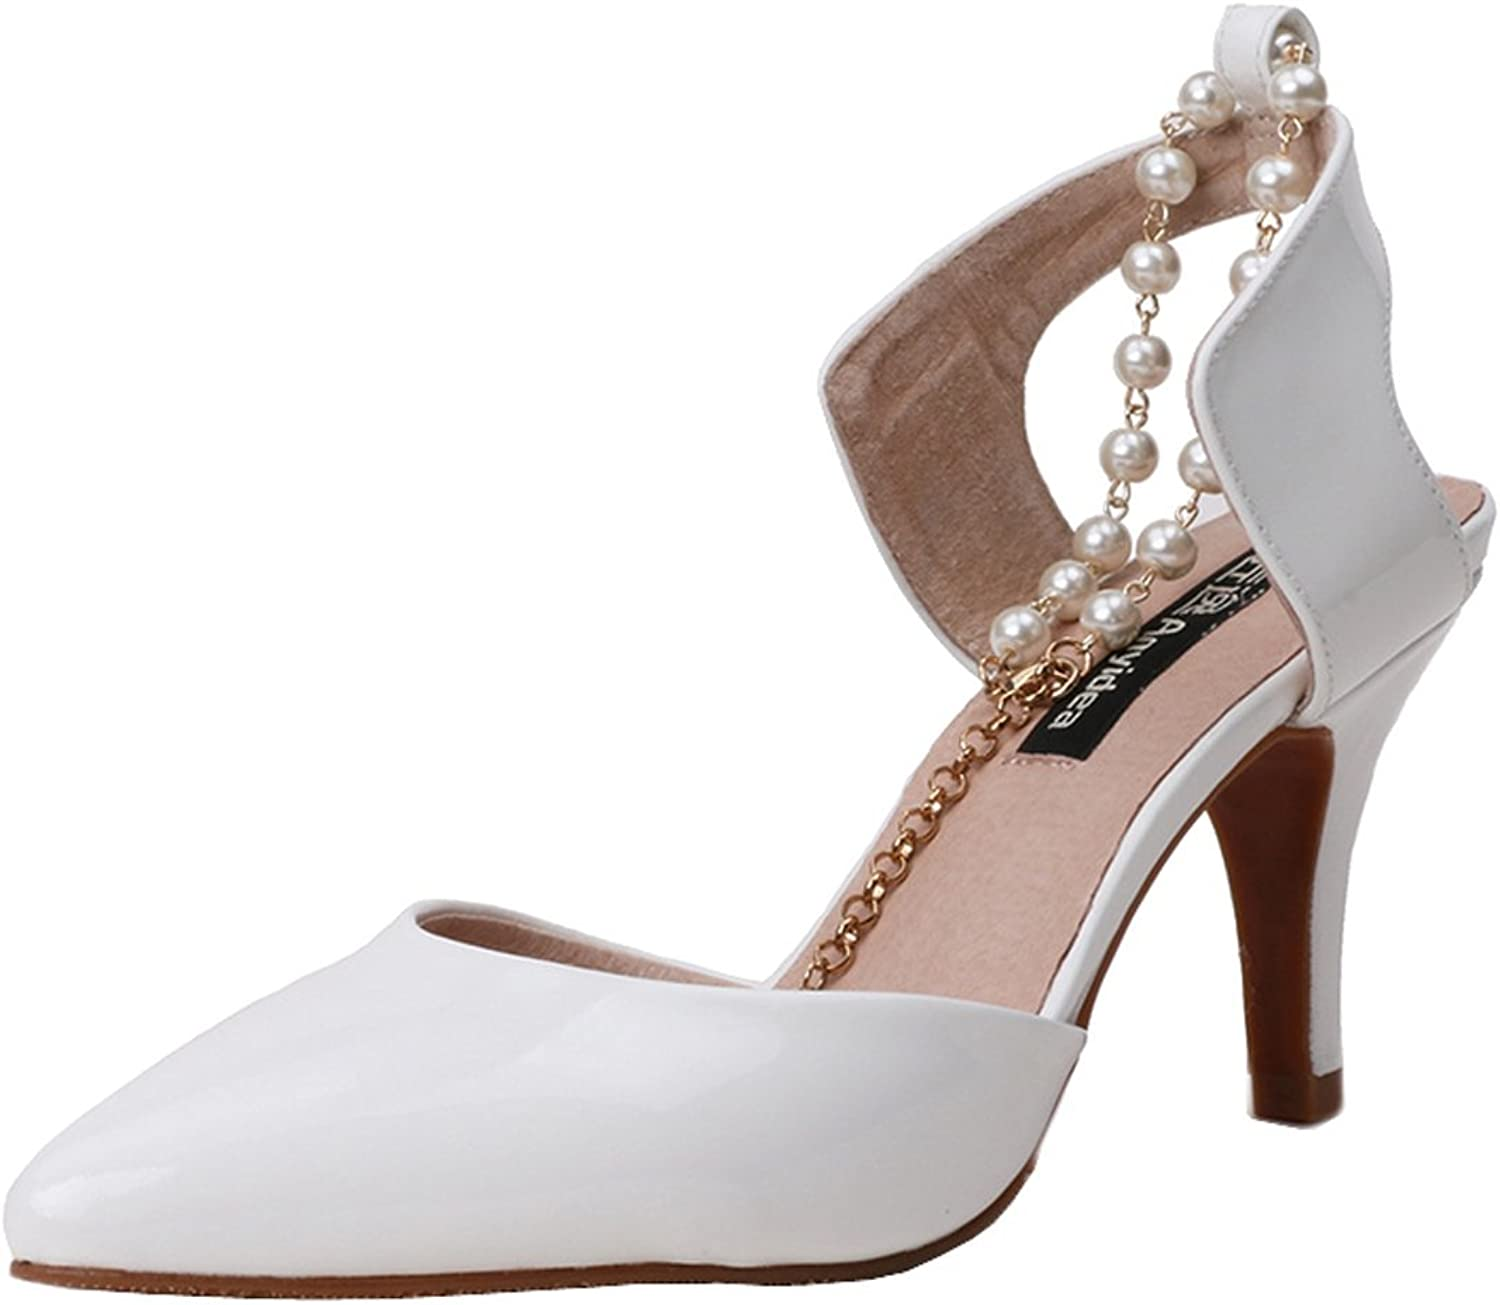 Anyidea new beaded sandals high-heeled sandals